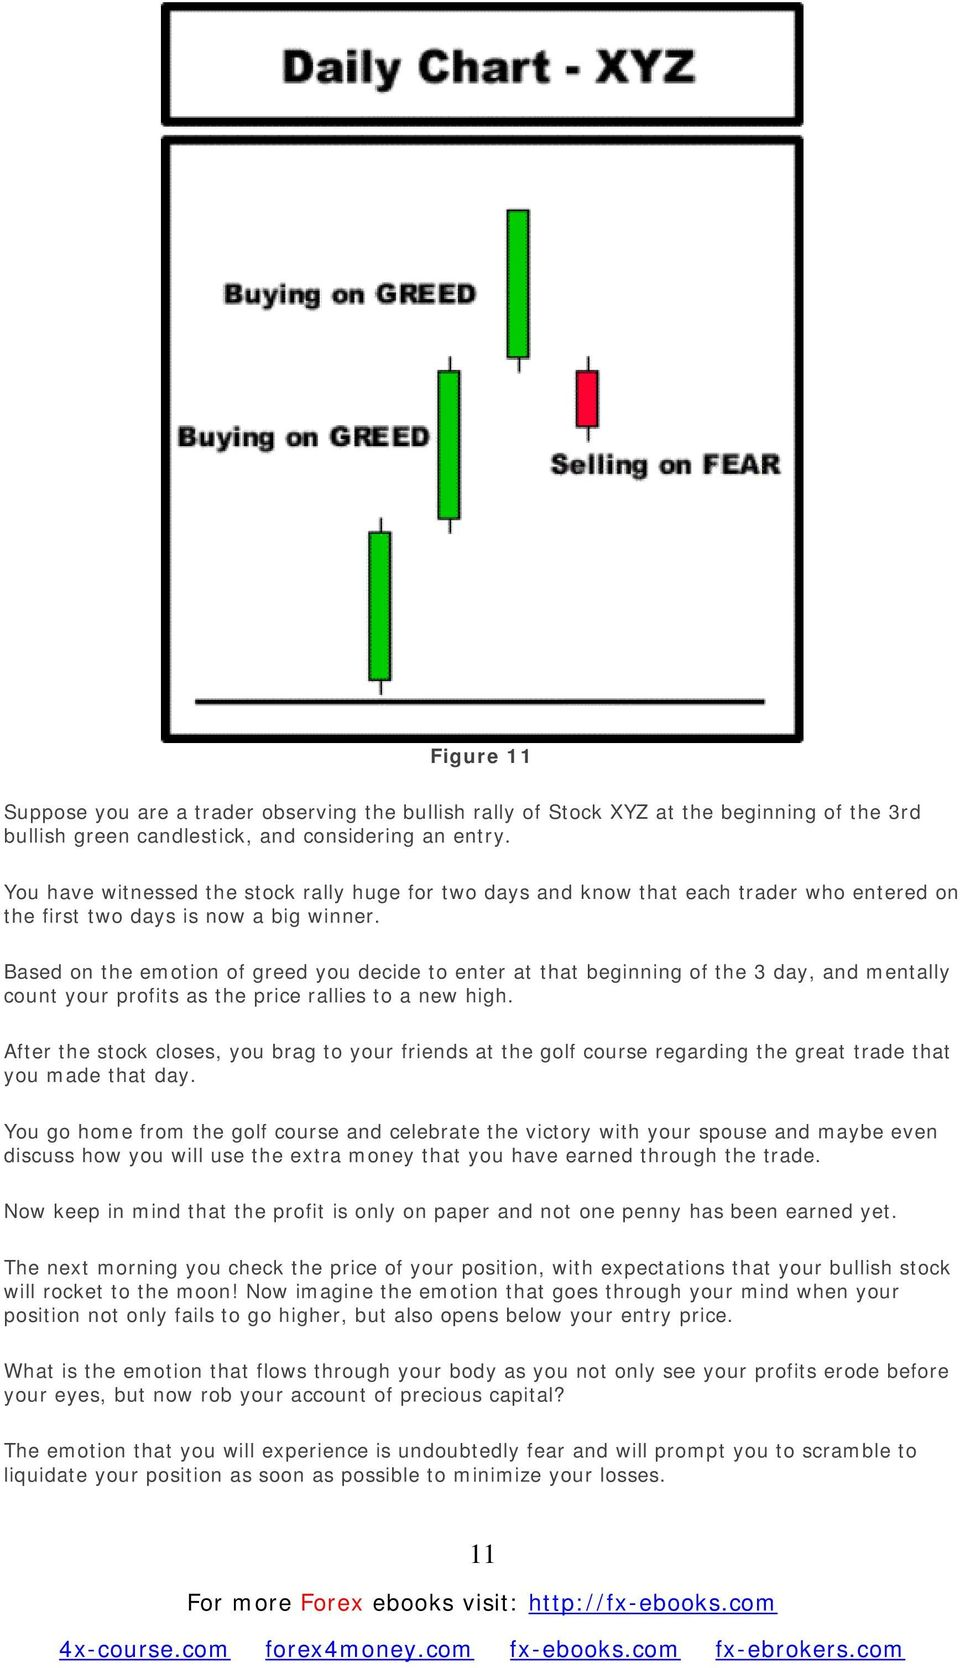 Based on the emotion of greed you decide to enter at that beginning of the 3 day, and mentally count your profits as the price rallies to a new high.